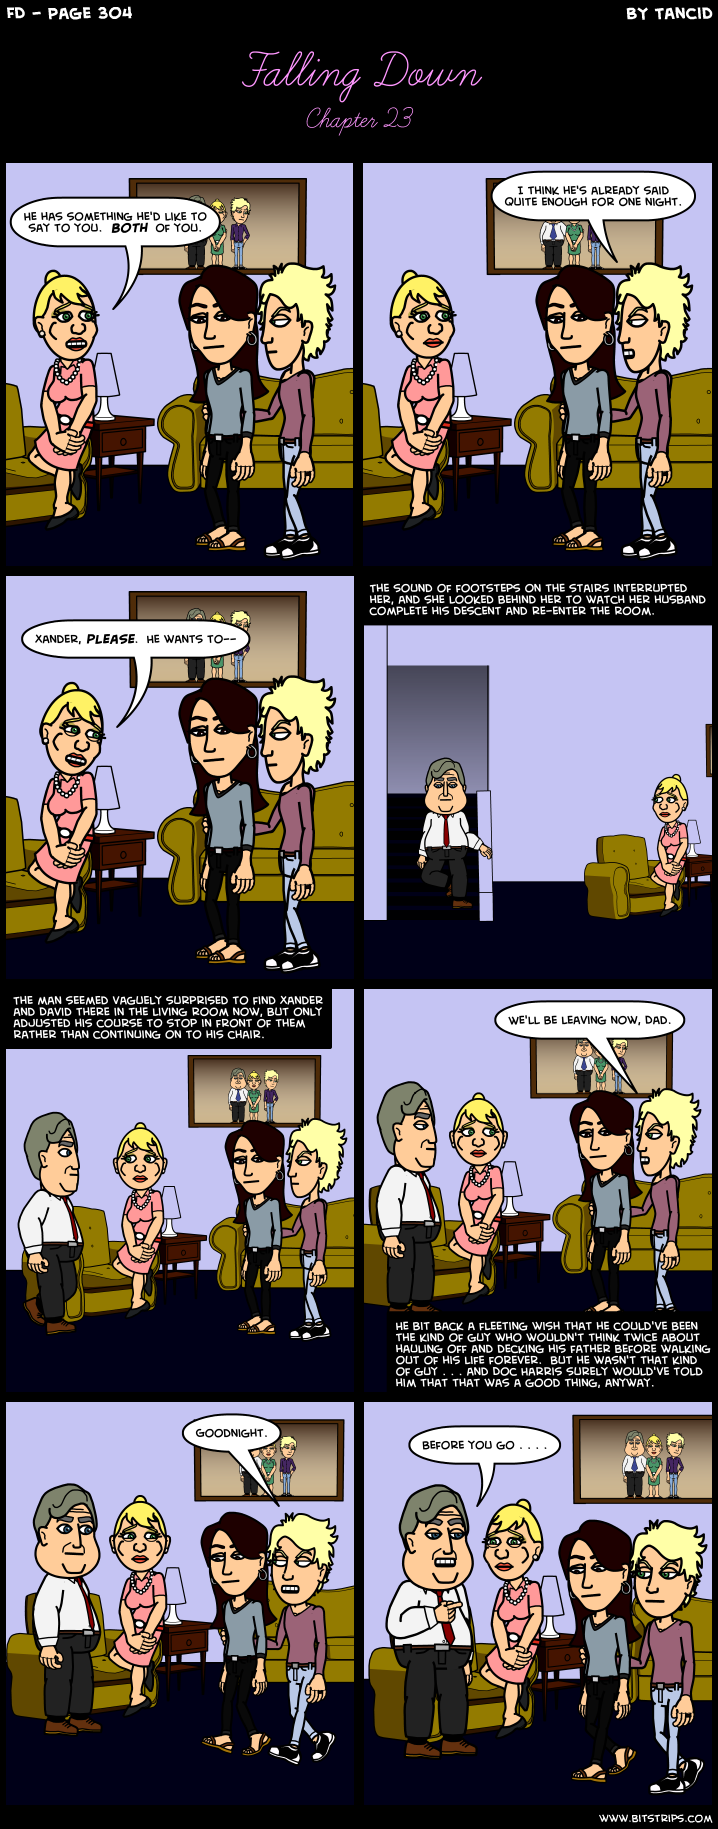 FD - Page 304